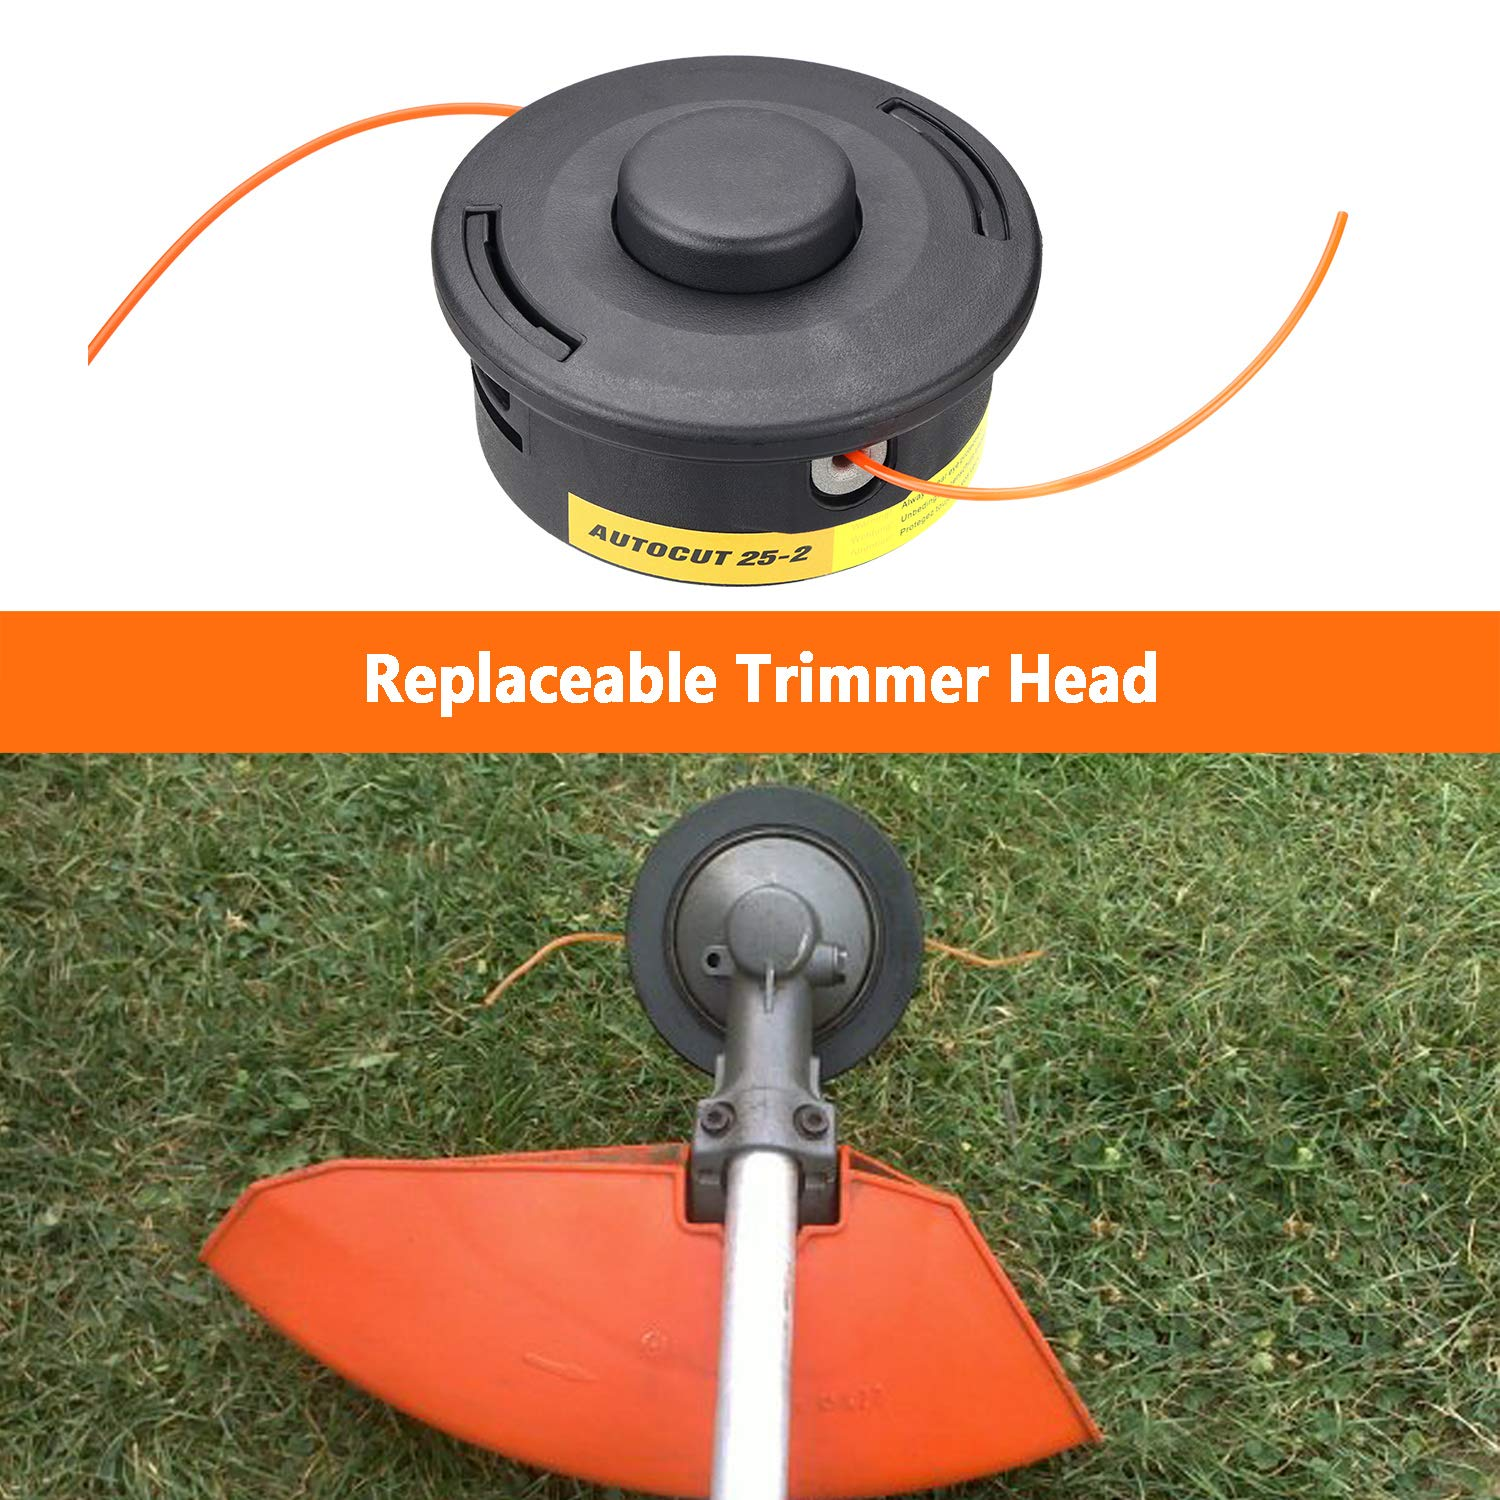 Grass Trimmer Accessories Home & Garden Store YOUSHARES Trimmer ...